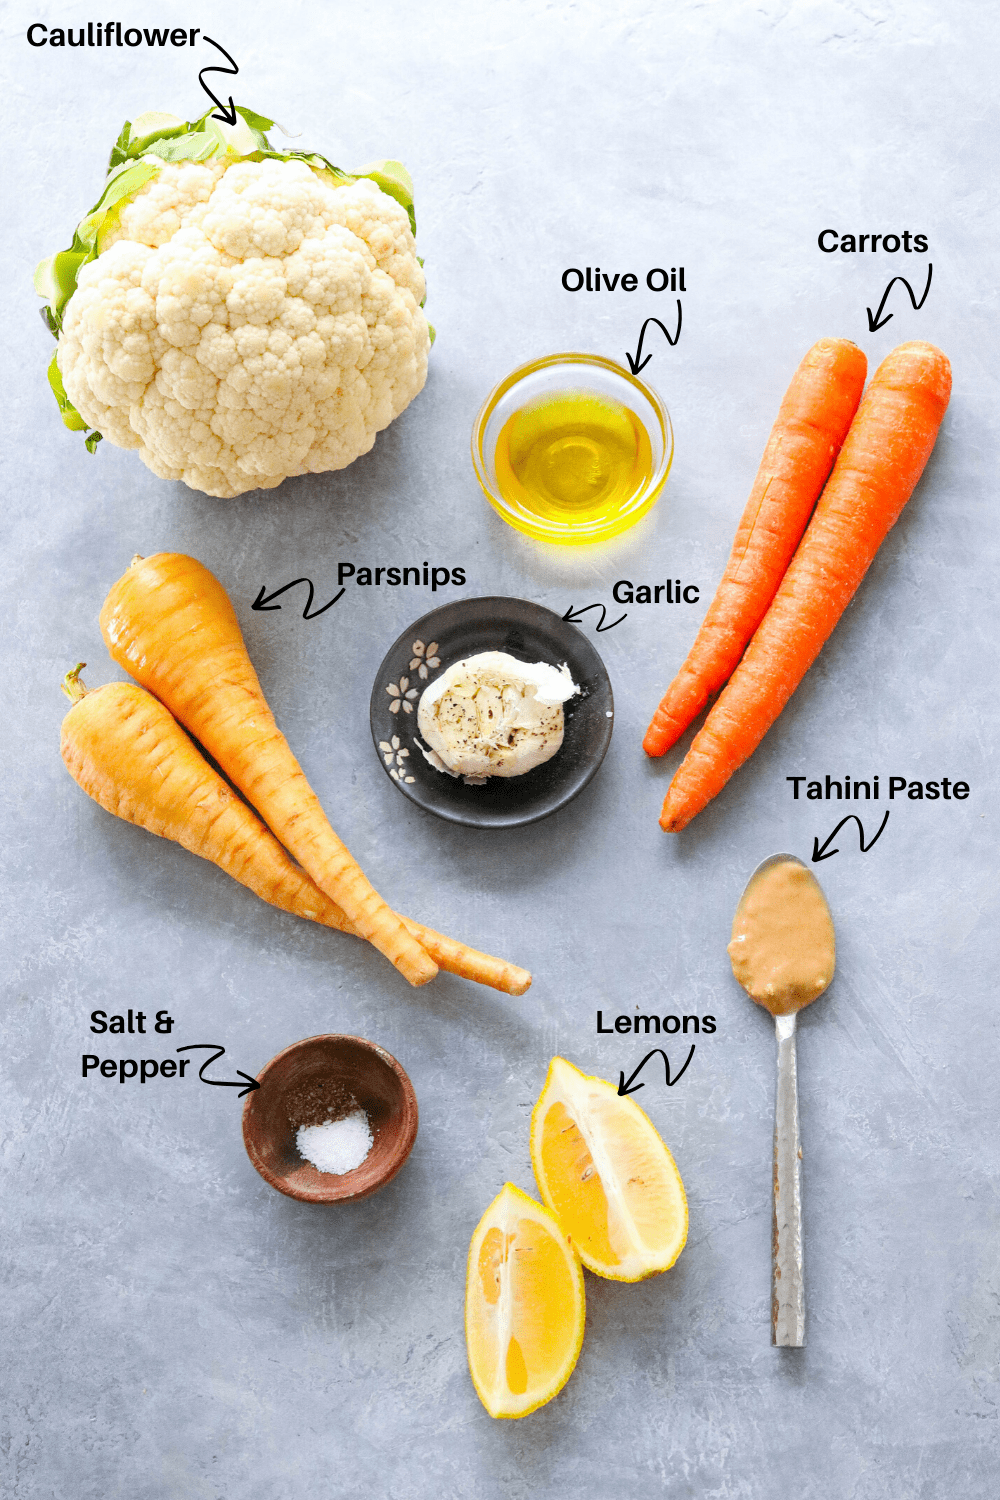 cauliflower, carrots, parsnips, lemon and tahini paste on a gray board with  labels